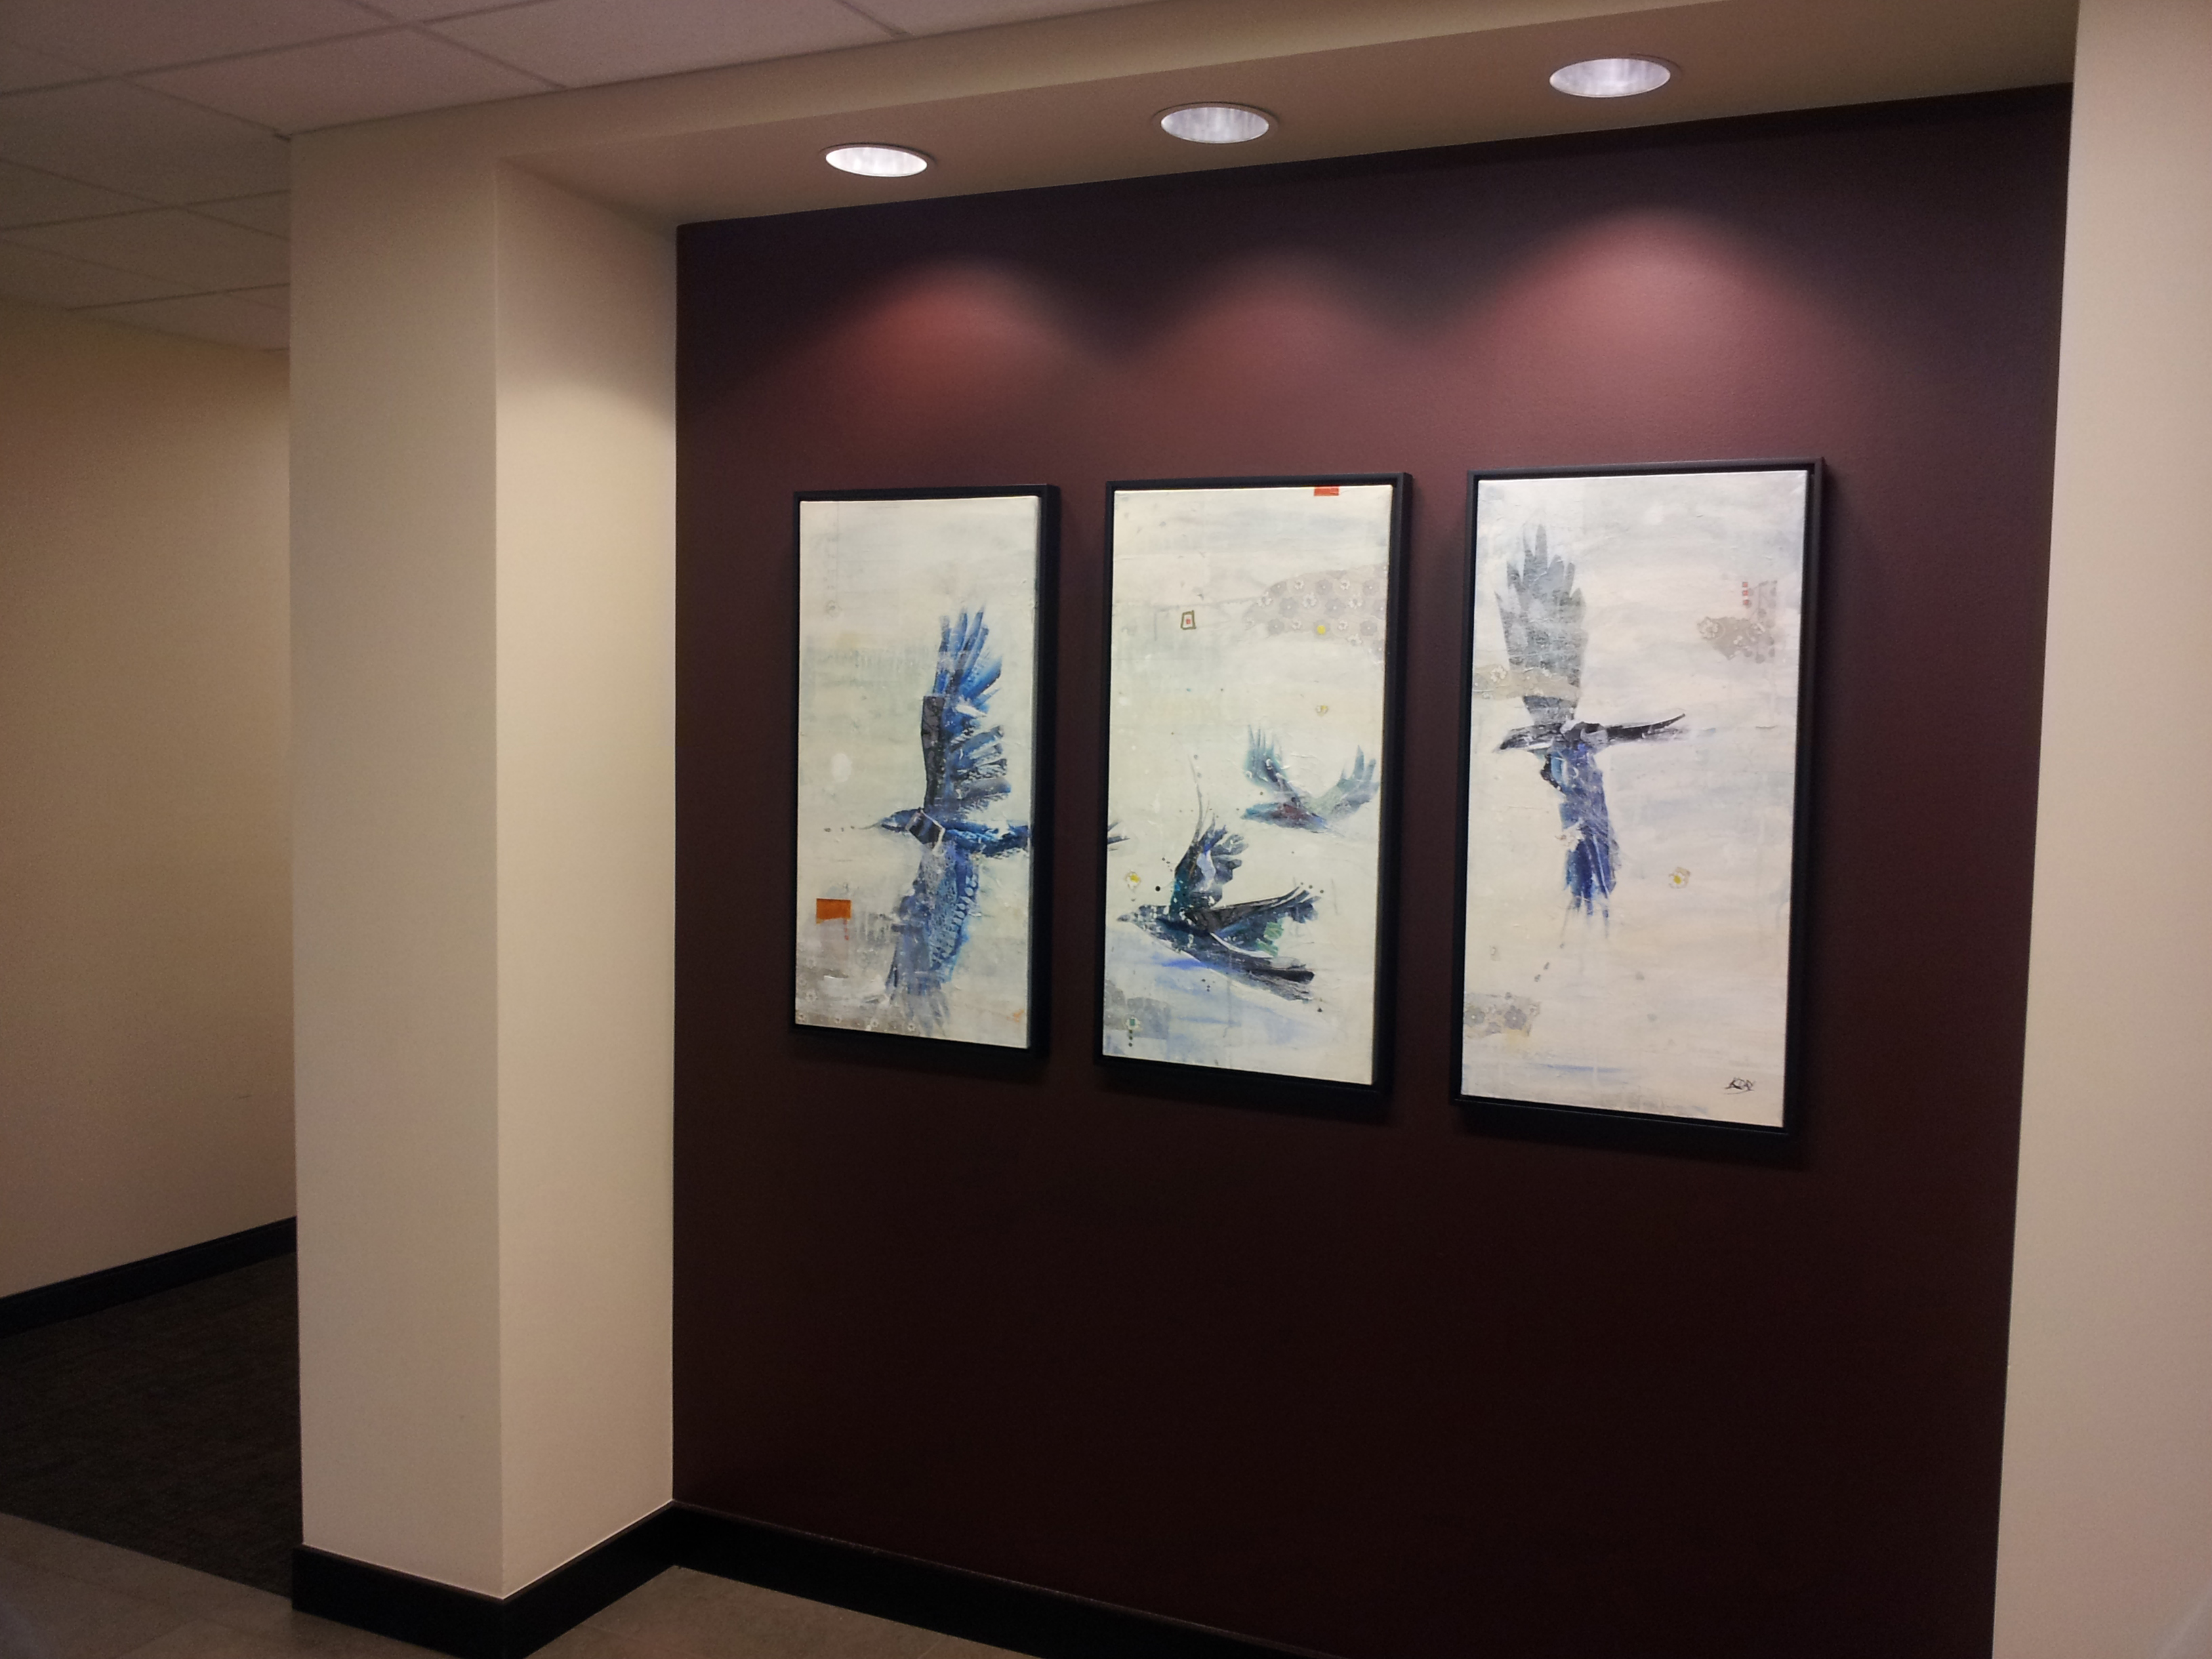 Corporate art installation by Kellie Day at Catholic Health Initiatives, Englewood CO